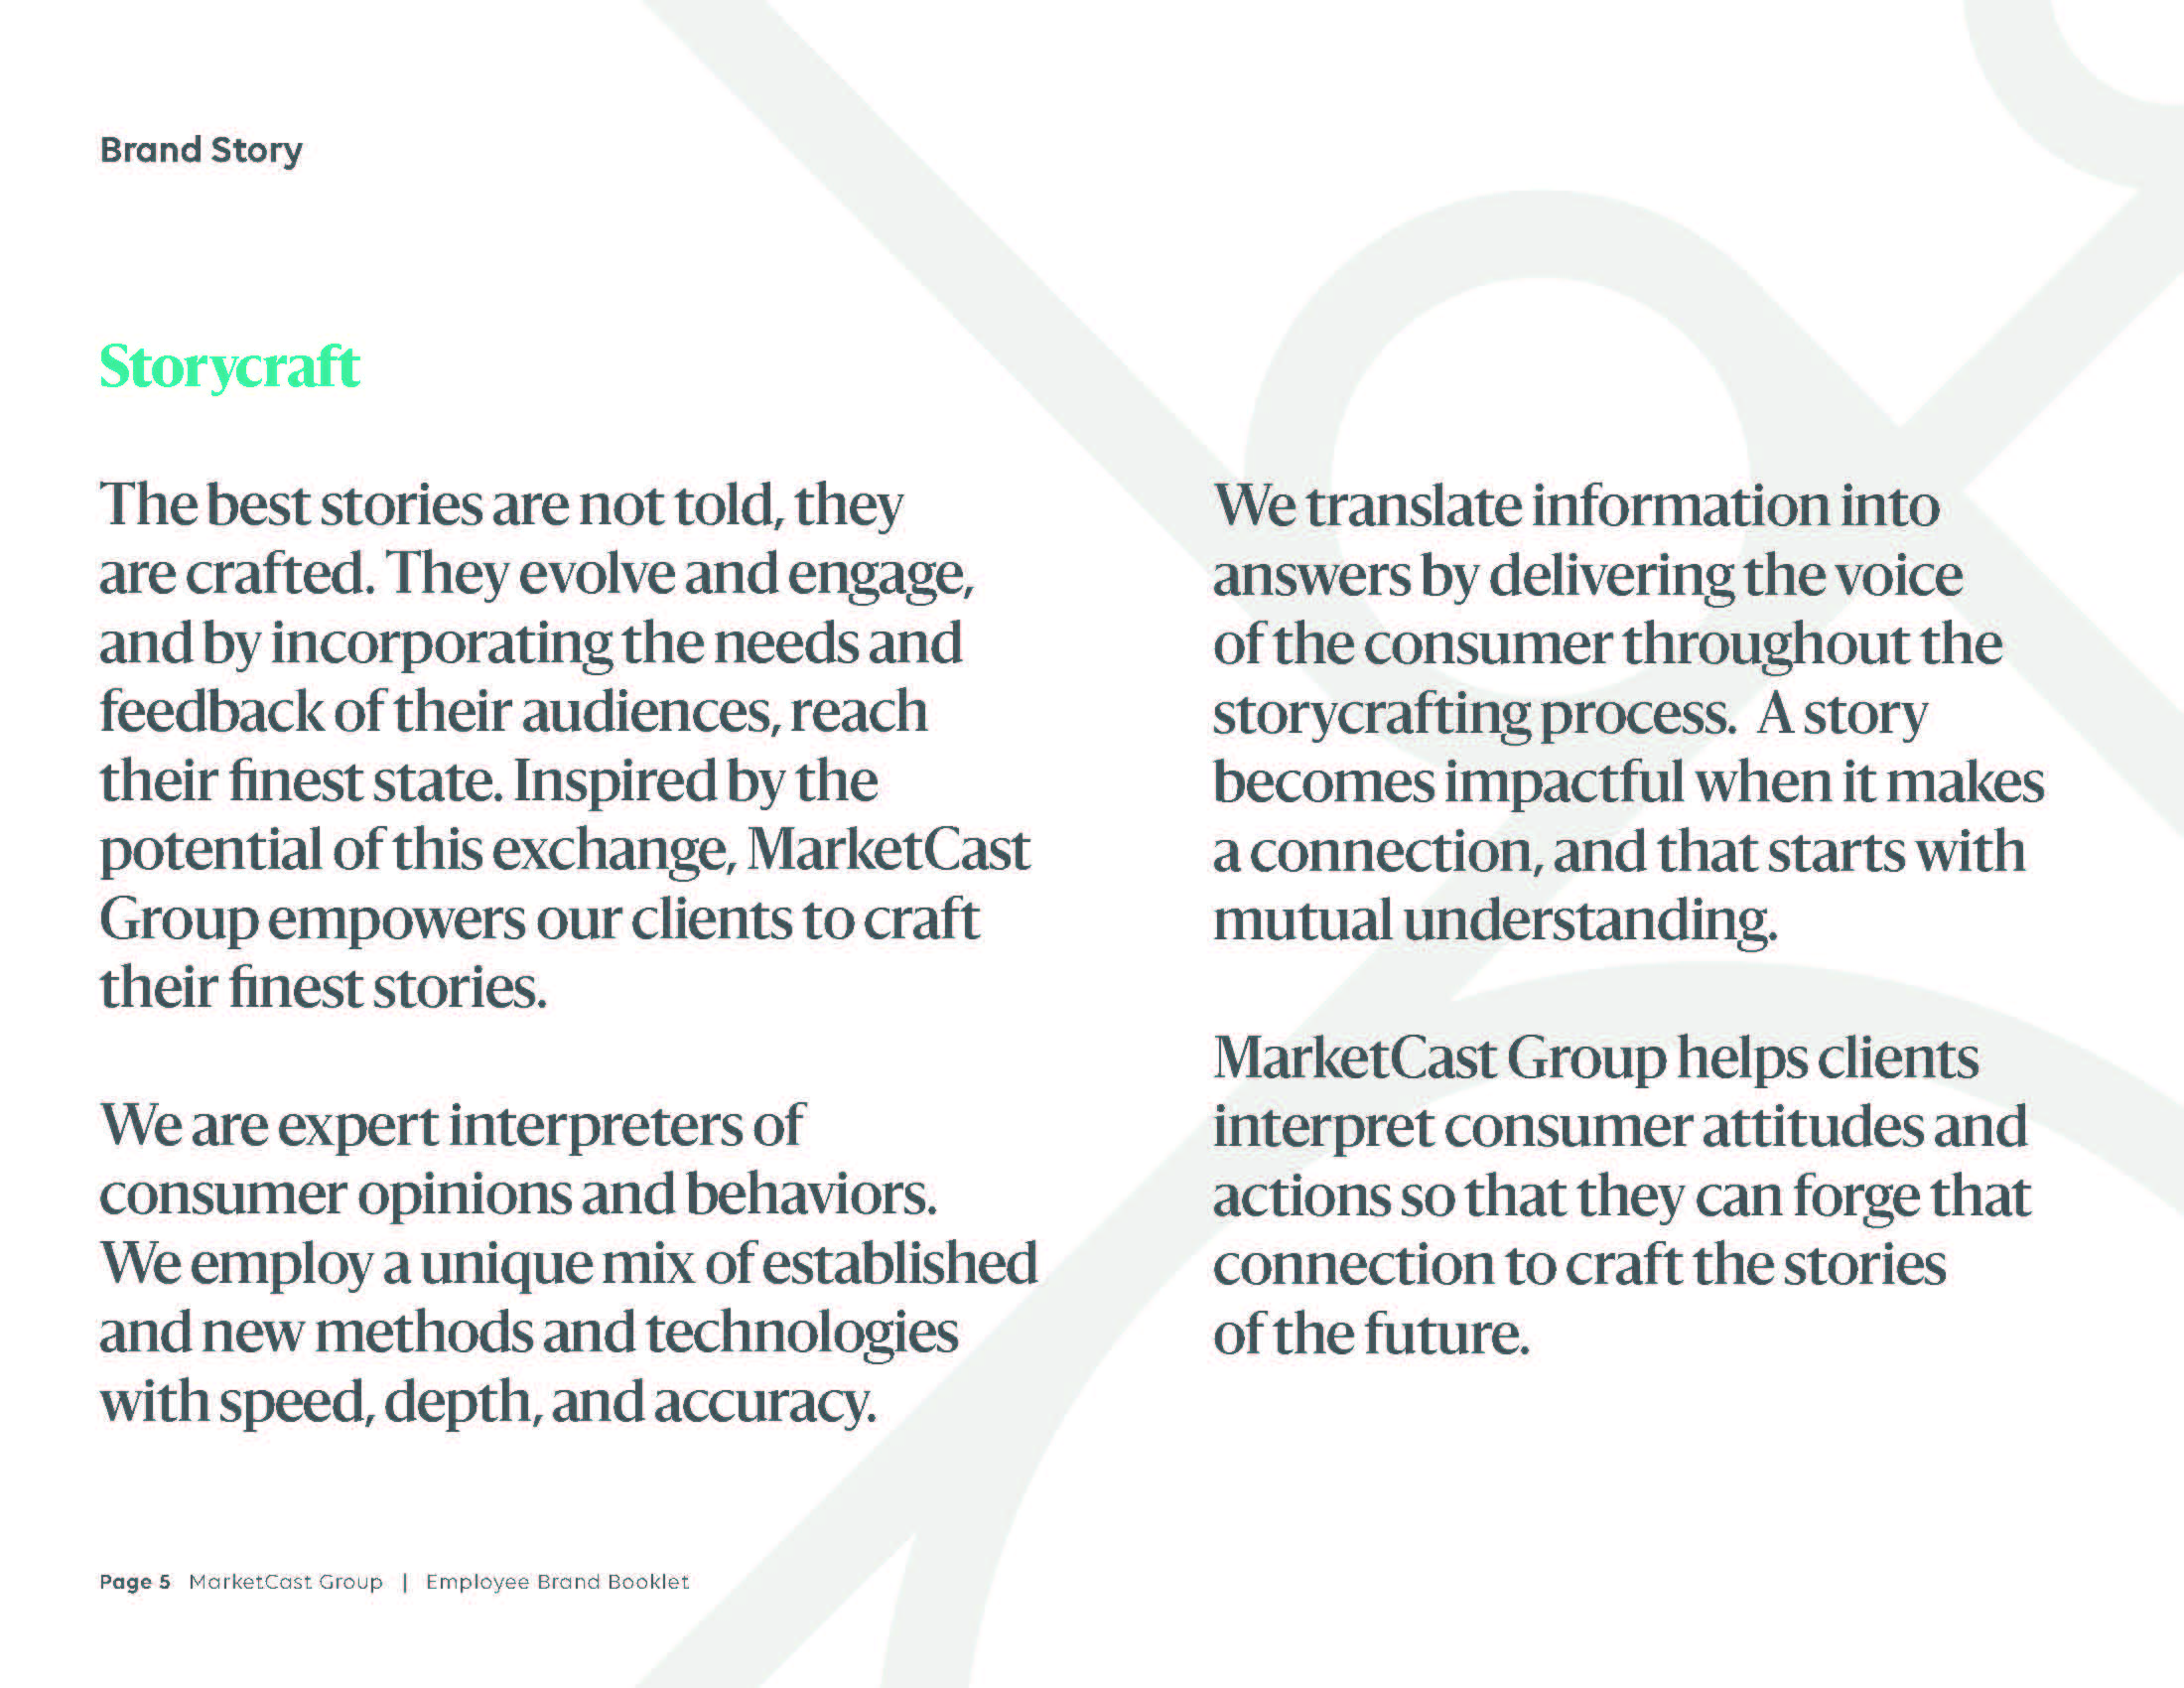 MarketCastGroup_Employee_Brand_Booklet